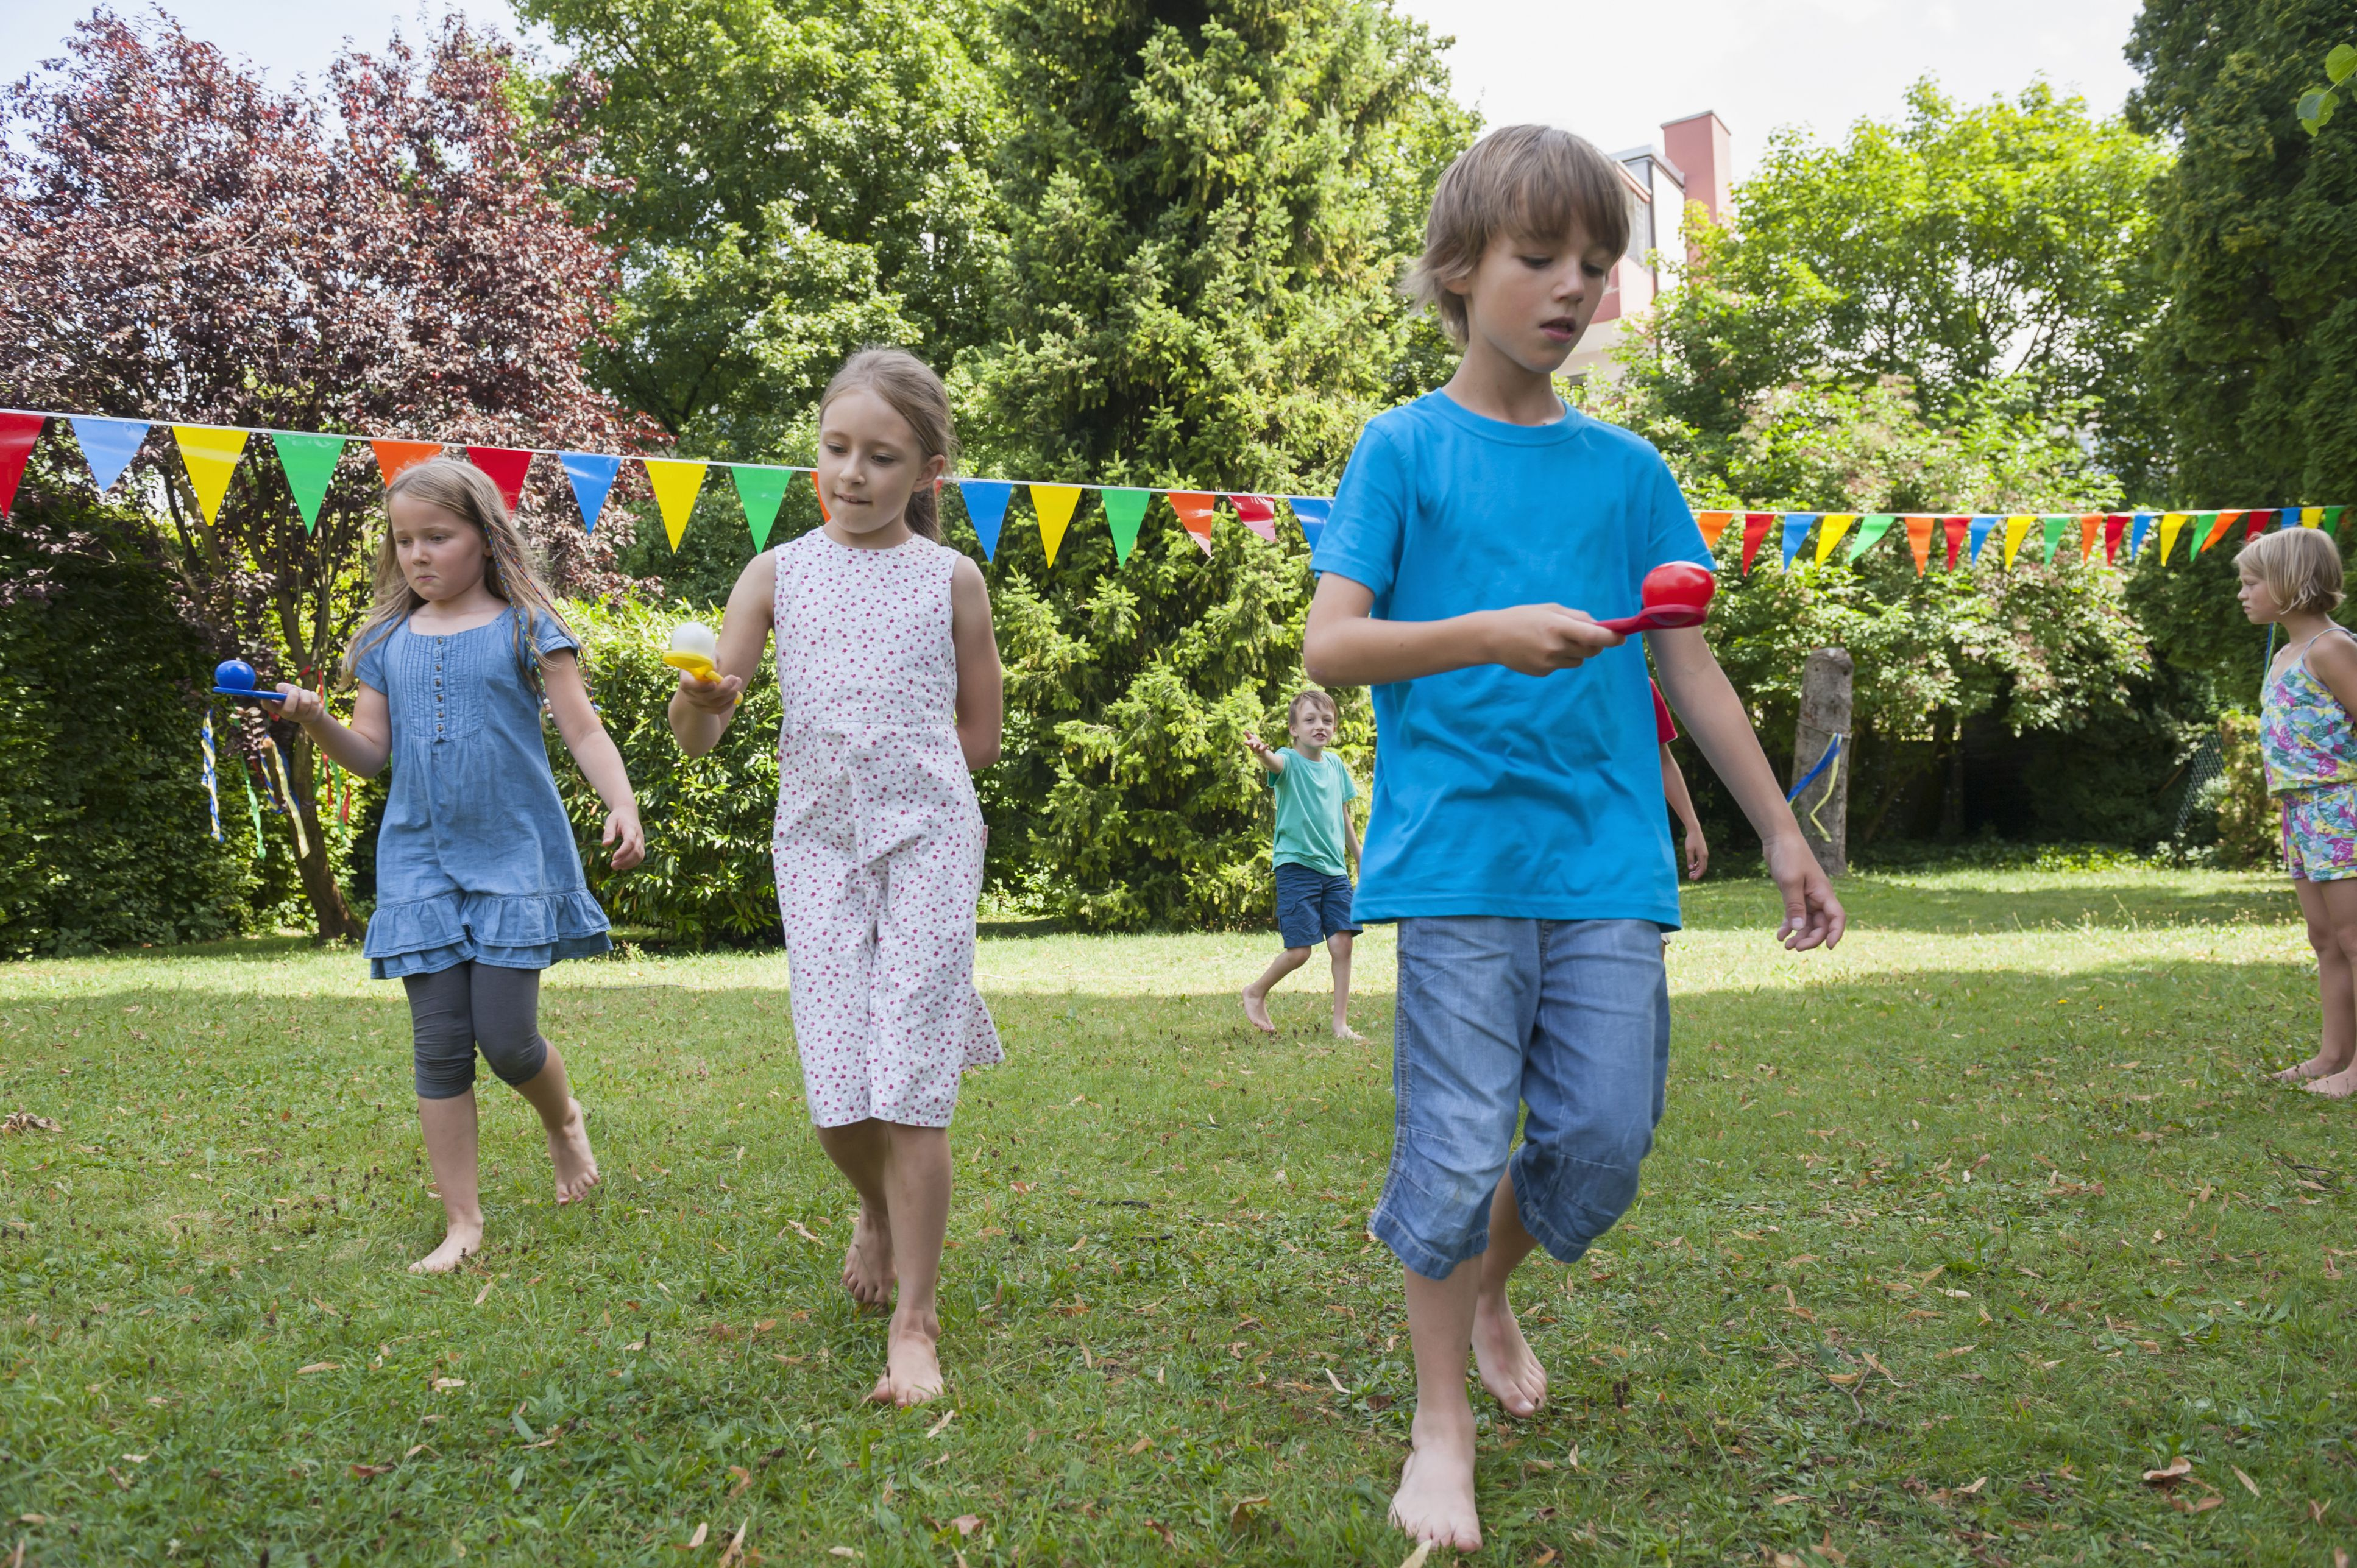 Children having a spoon and egg race in garden on a birthday party